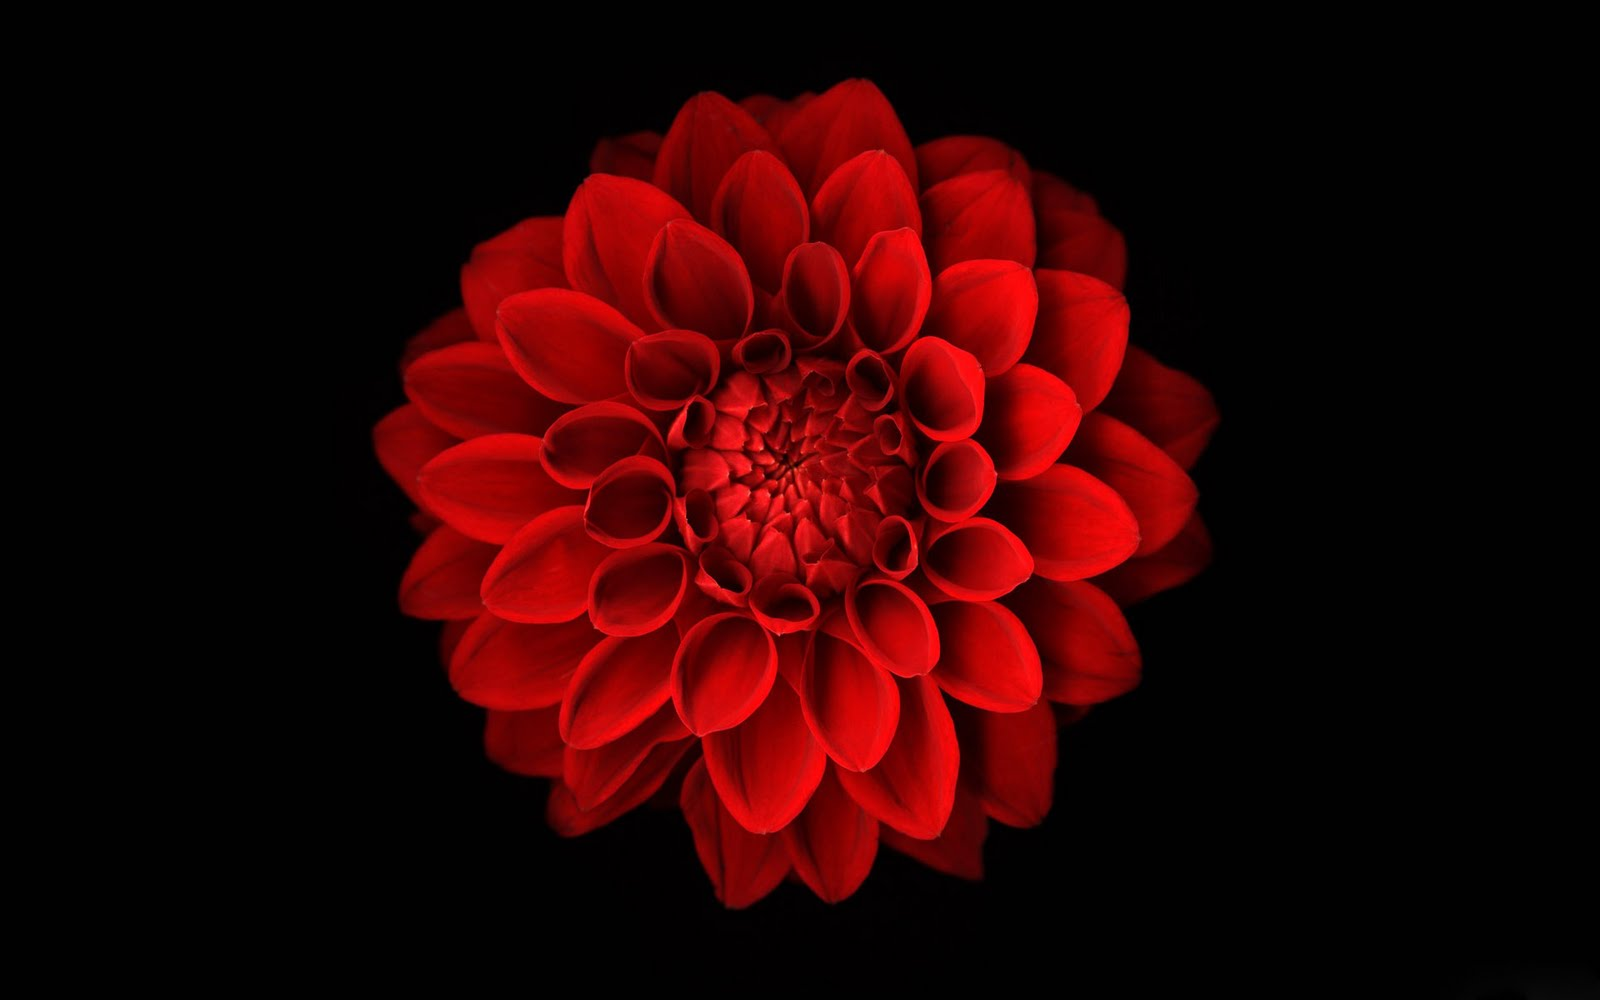 Black And Red Flower Iphone Wallpaper 1 Background ...